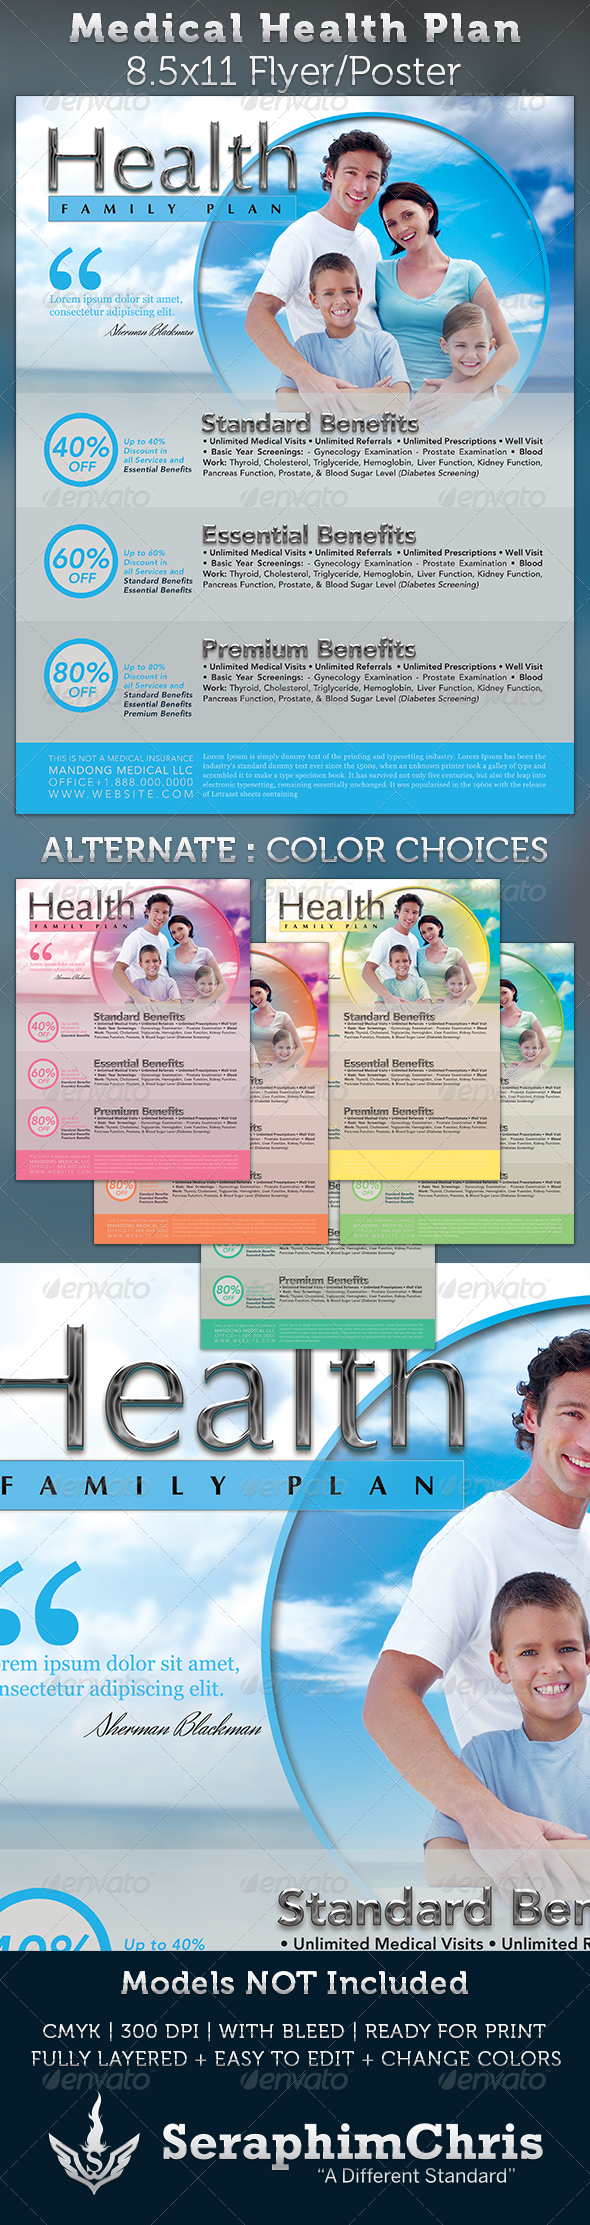 Medical Health Plan Flyer Template - Corporate Flyers